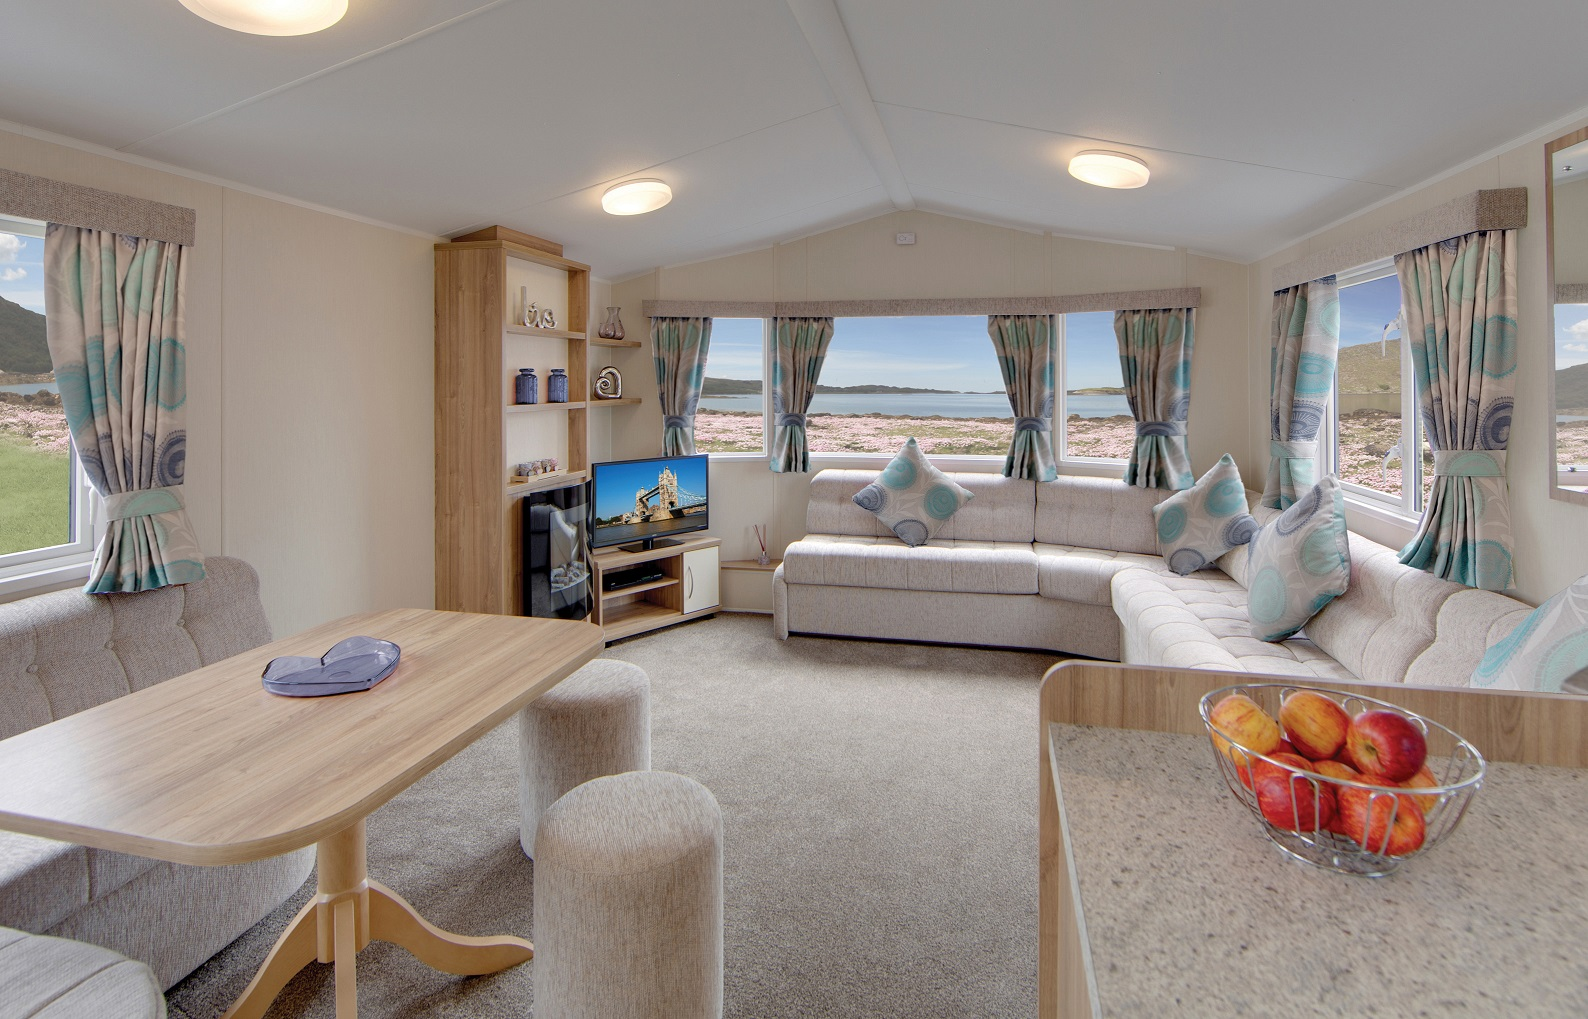 Willerby Rio Gold - 3 Bedrooms: New Static Caravans and Holiday Homes for Sale, Adderstone, Belford Large Image 1